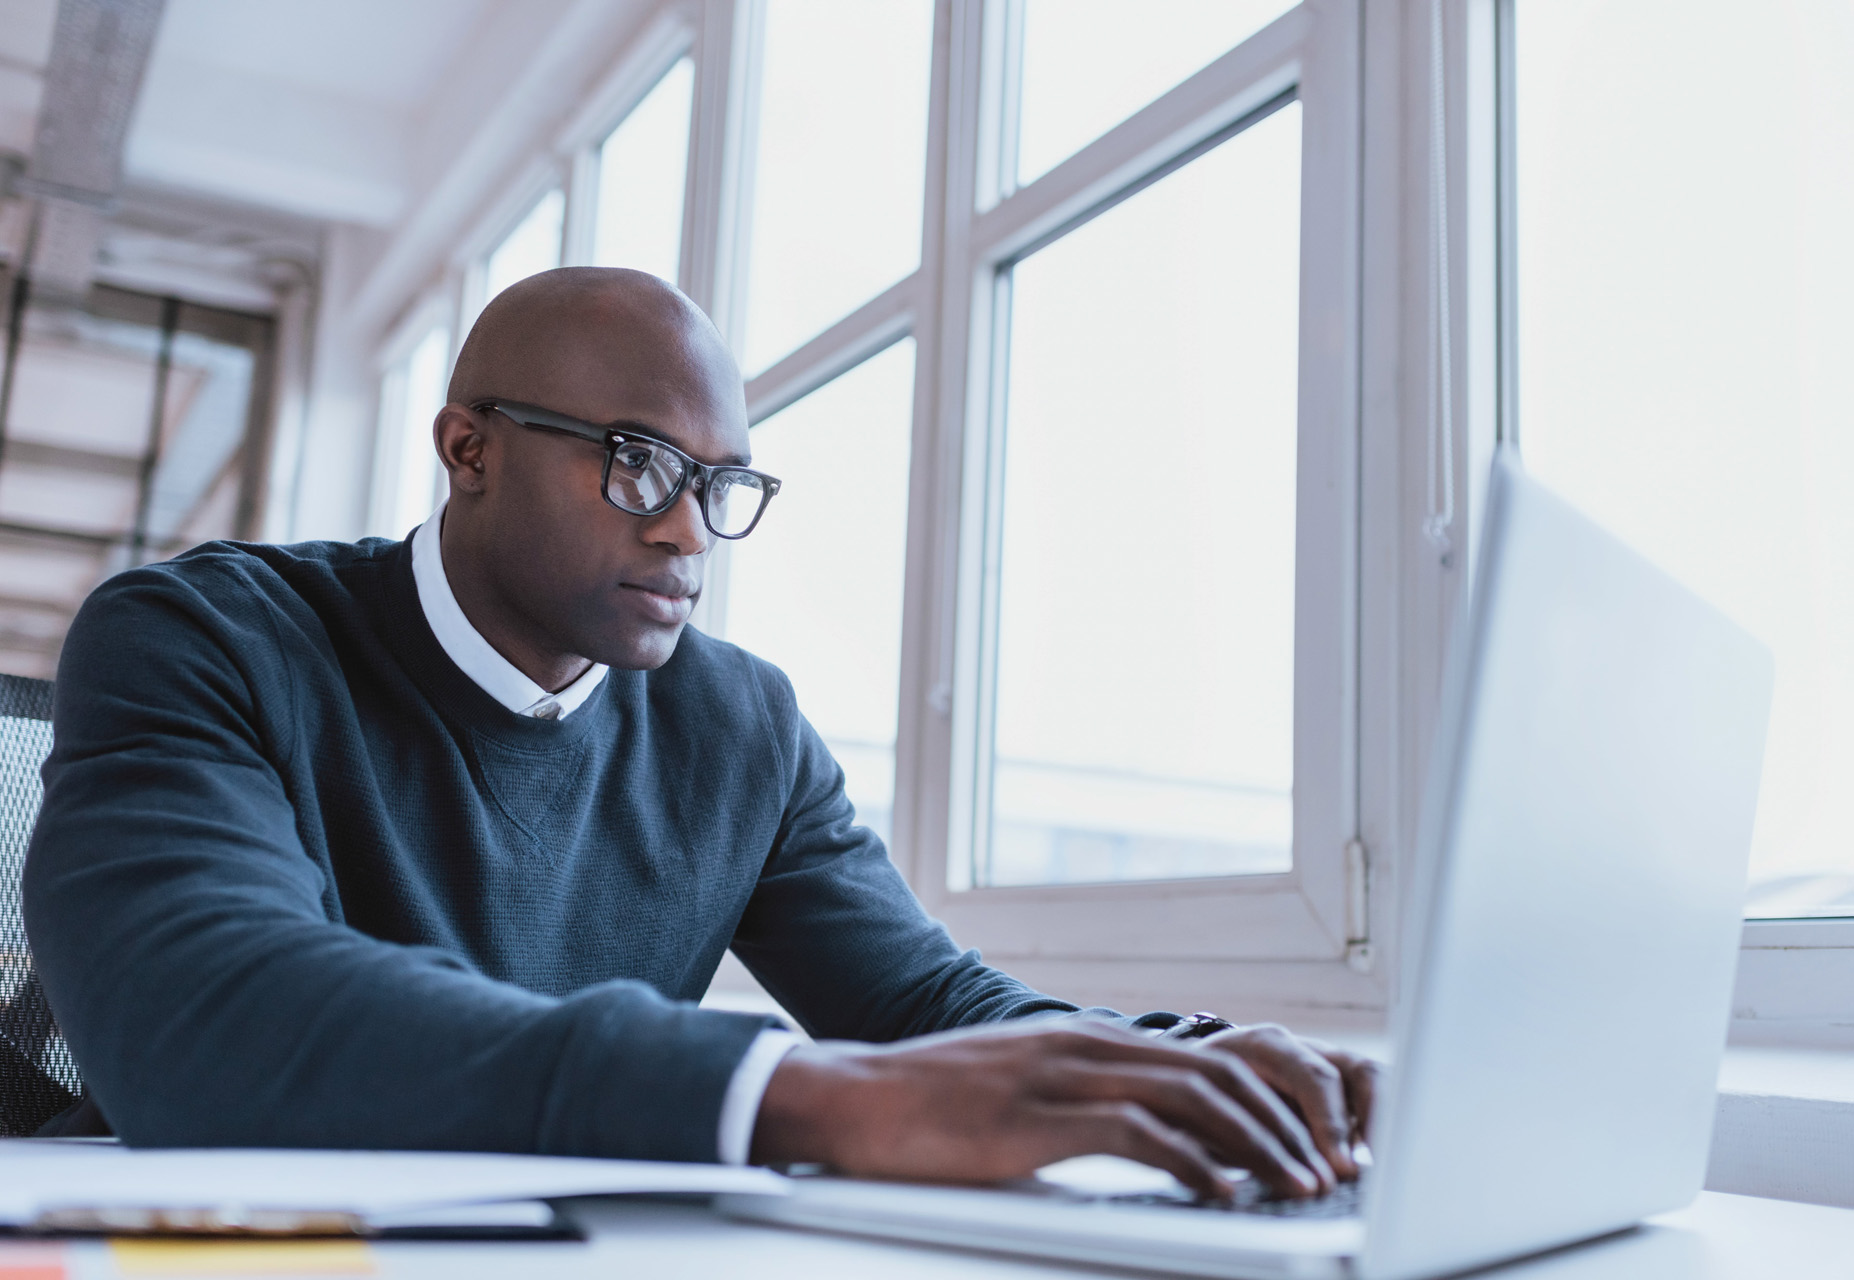 An African-American man in a blue sweater and black glasses is using electronic i9 management software on a laptop next to tall windows.